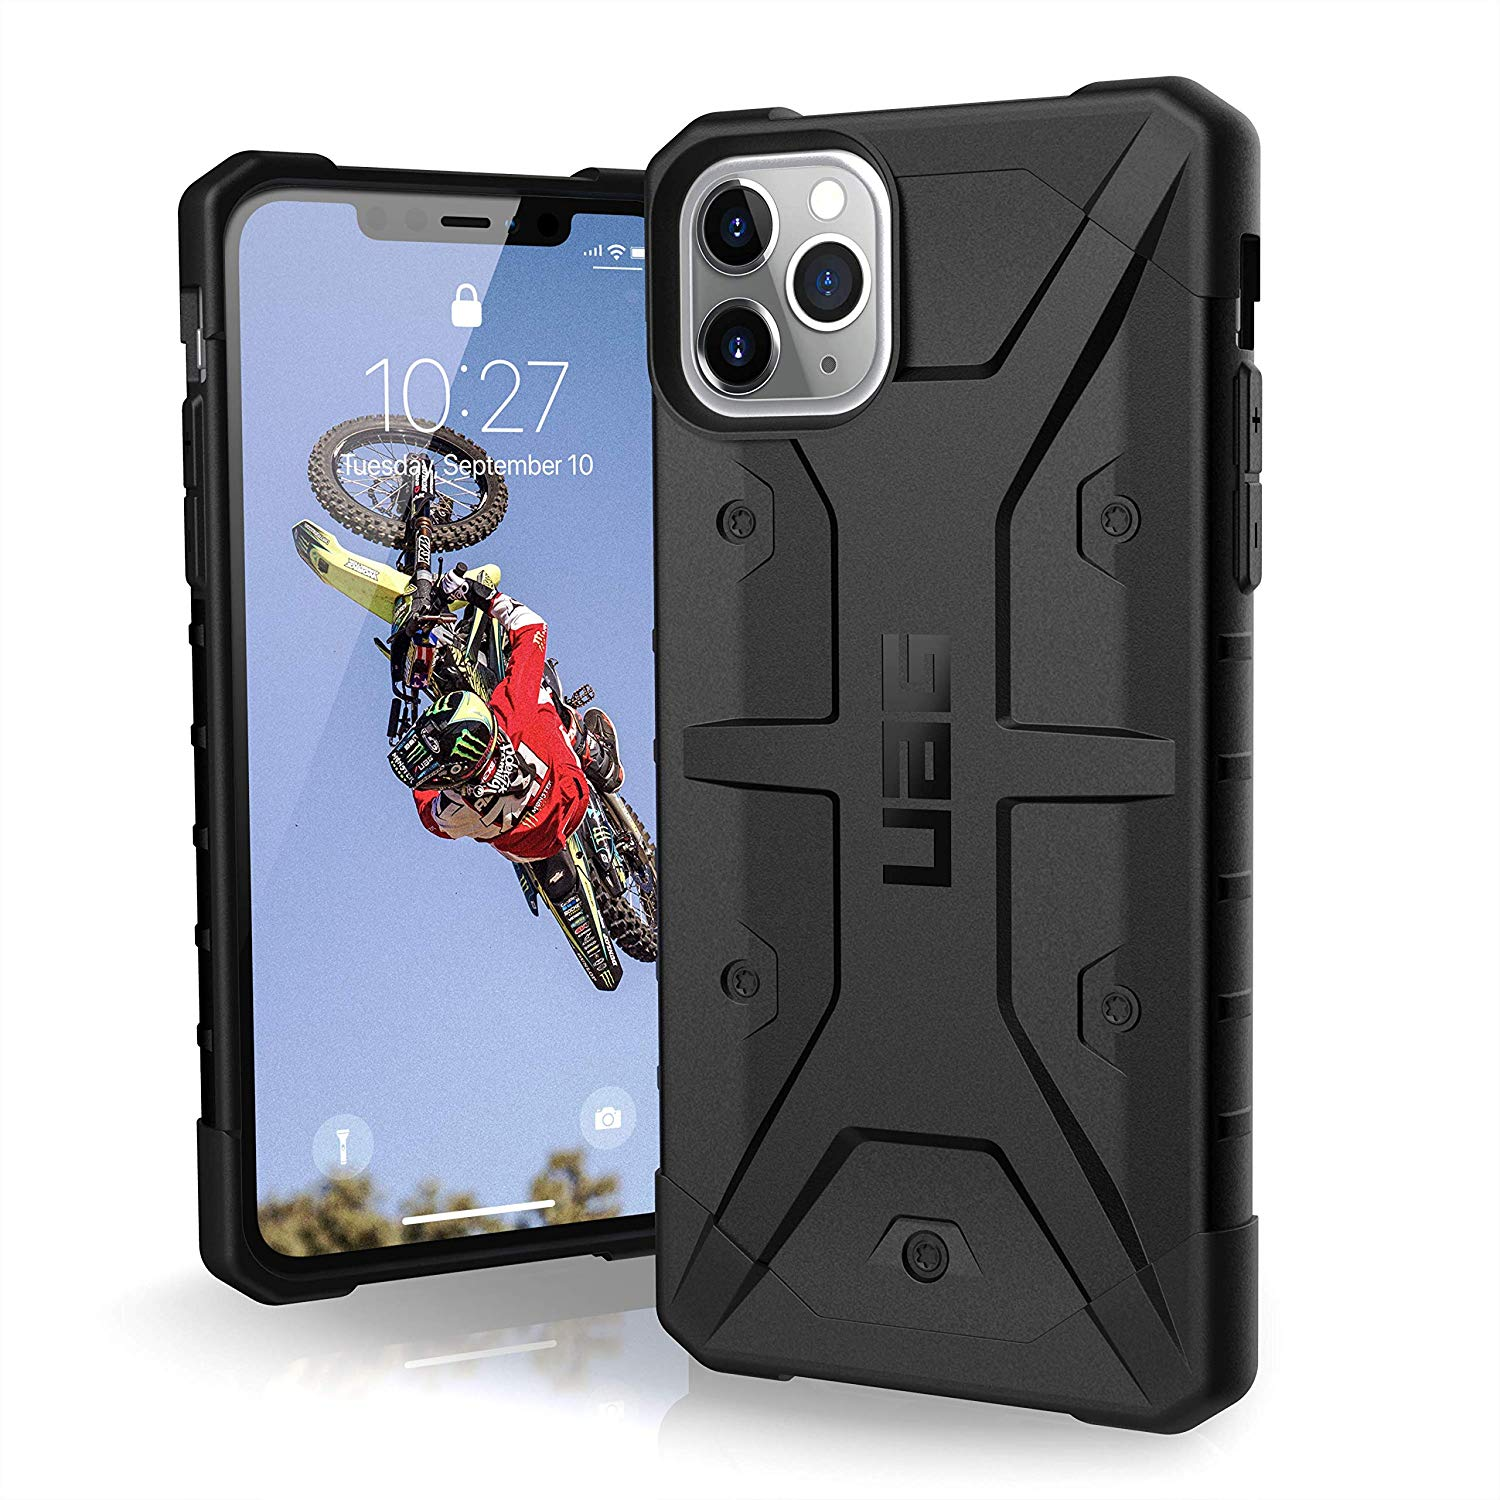 Etui Urban Armor Gear Pathfinder dla iPhone 11 Pro Max